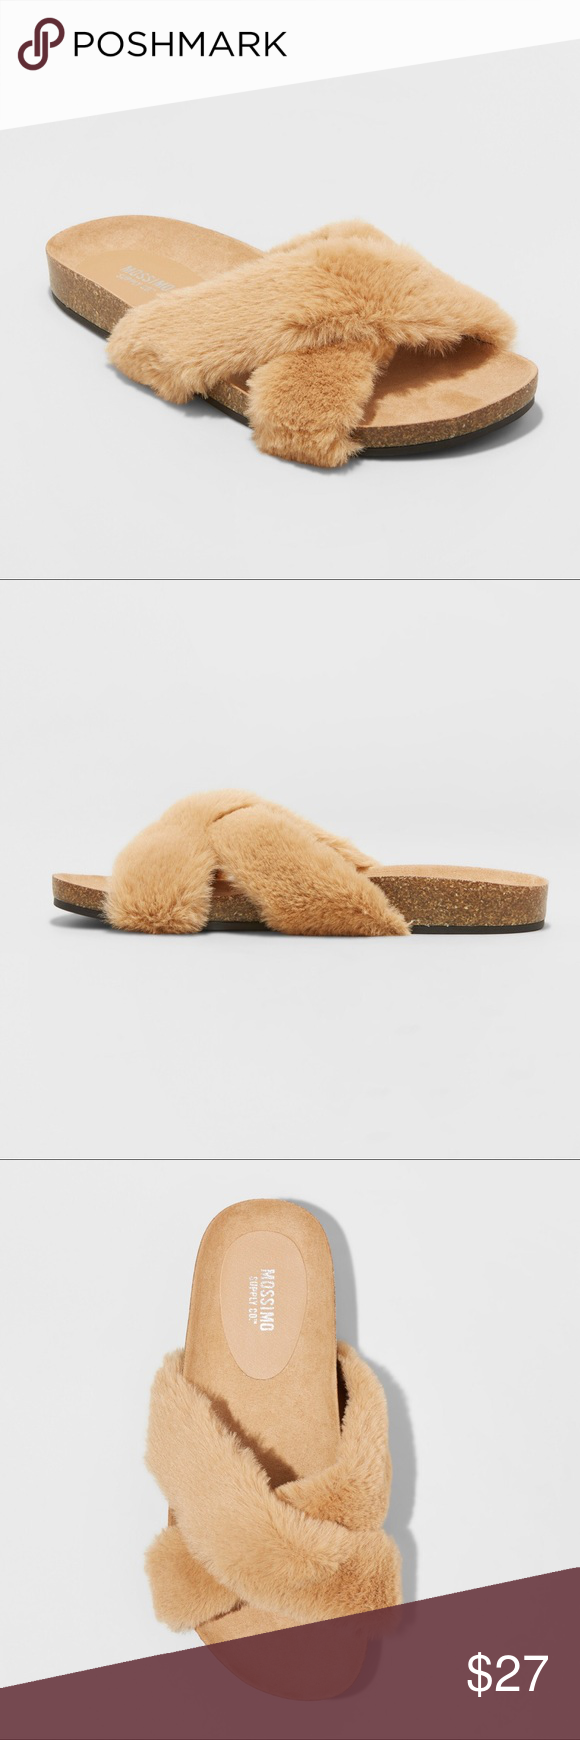 09893cc4cf2f3a Women s Bella Faux Fur Crossband Footbed Sandal Women s Bella Faux Fur  Crossband Footbed Sandal - Mossimo Supply beautiful very soft and fluffy  brand new ...